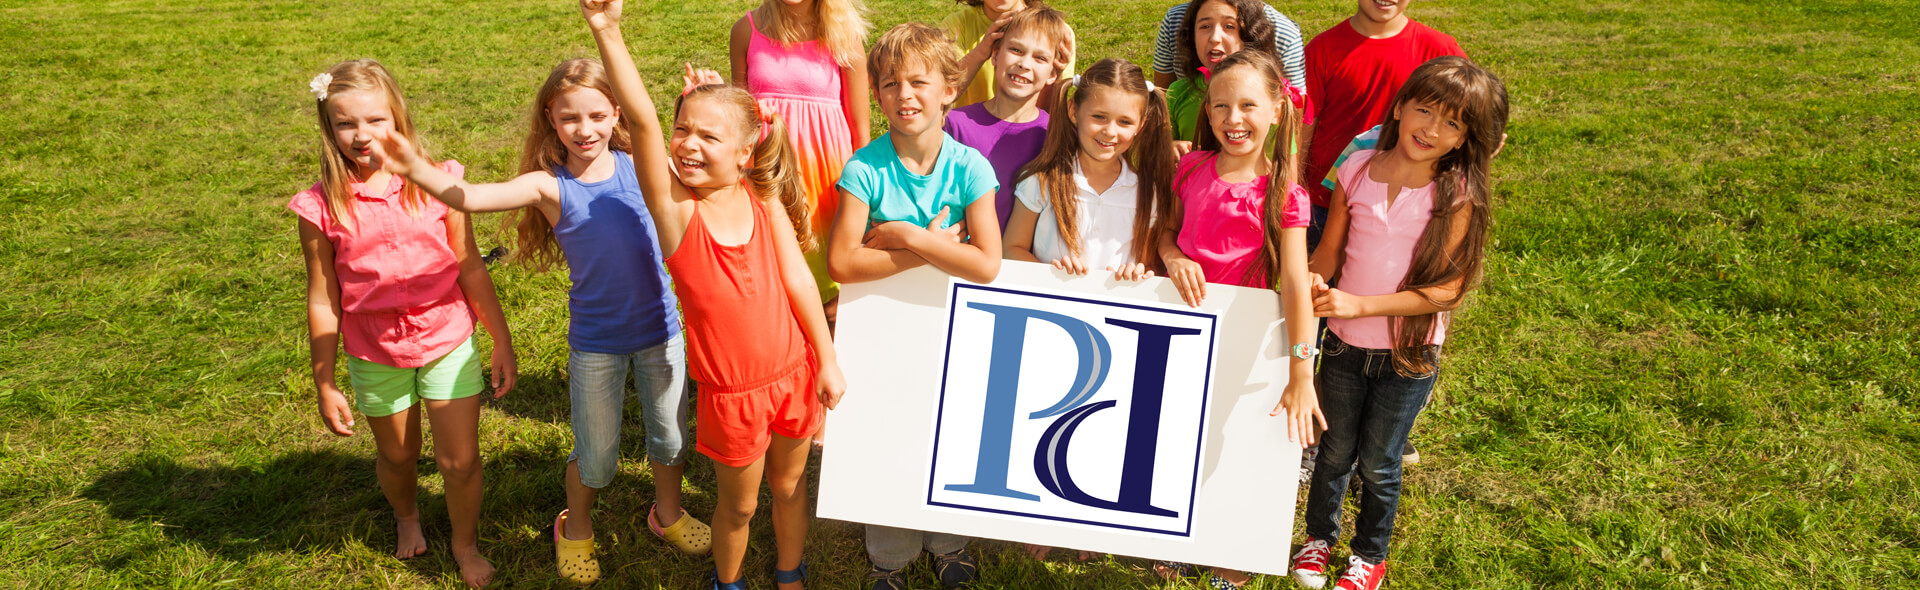 Paramount Pediatric Dentistry sign